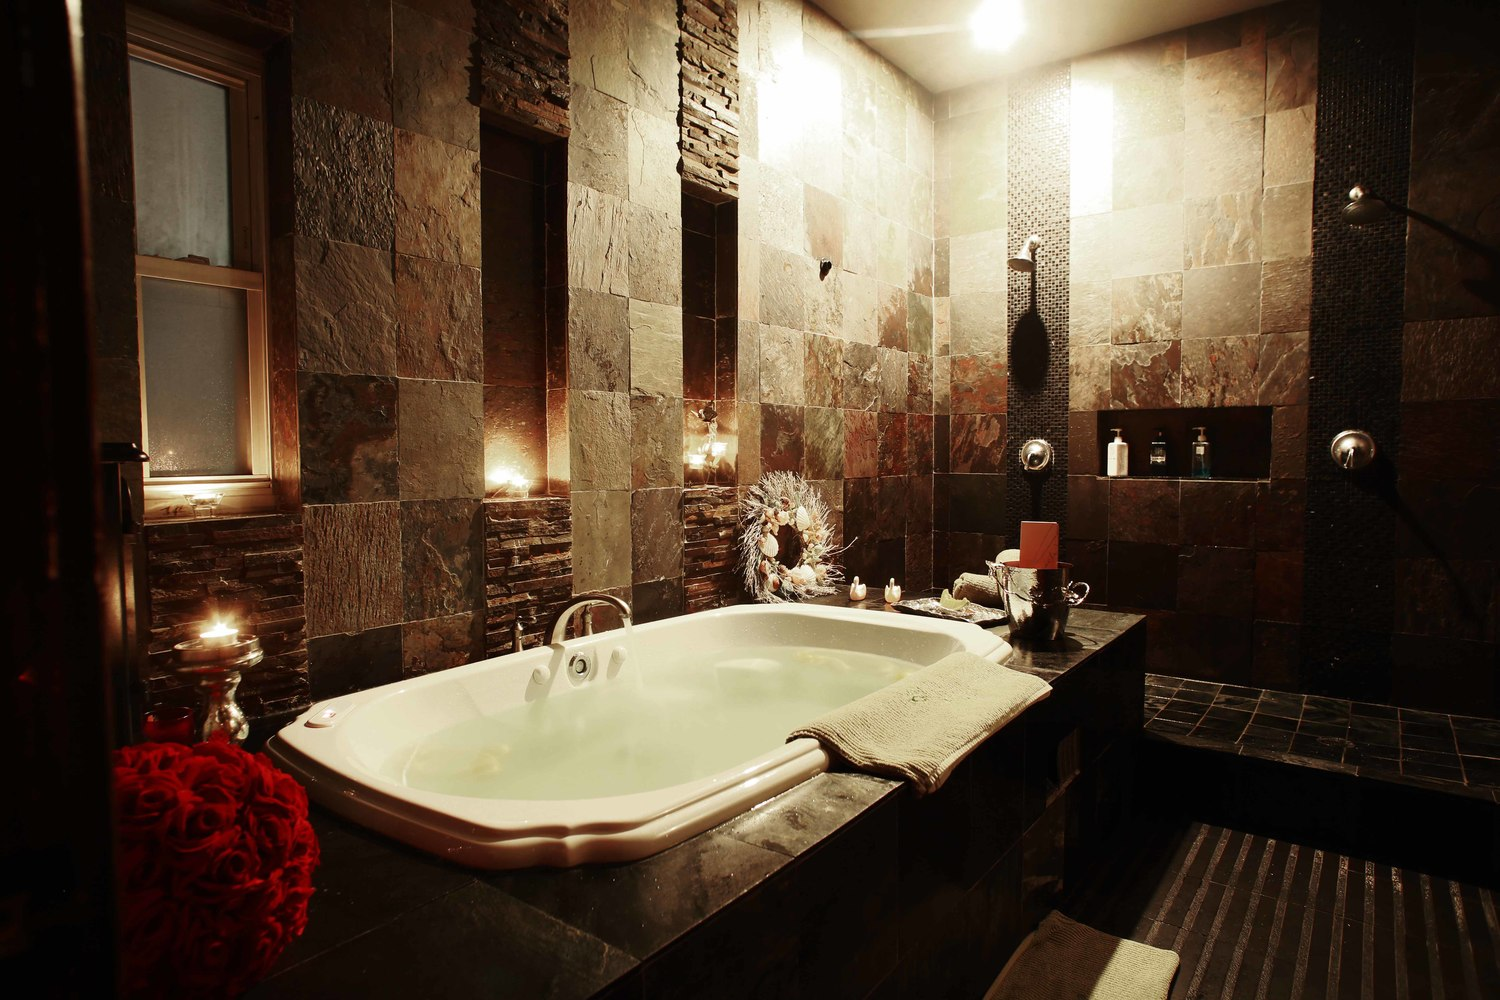 Romantic couples spa getaway in new york city nyc for Spa weekend getaways for couples